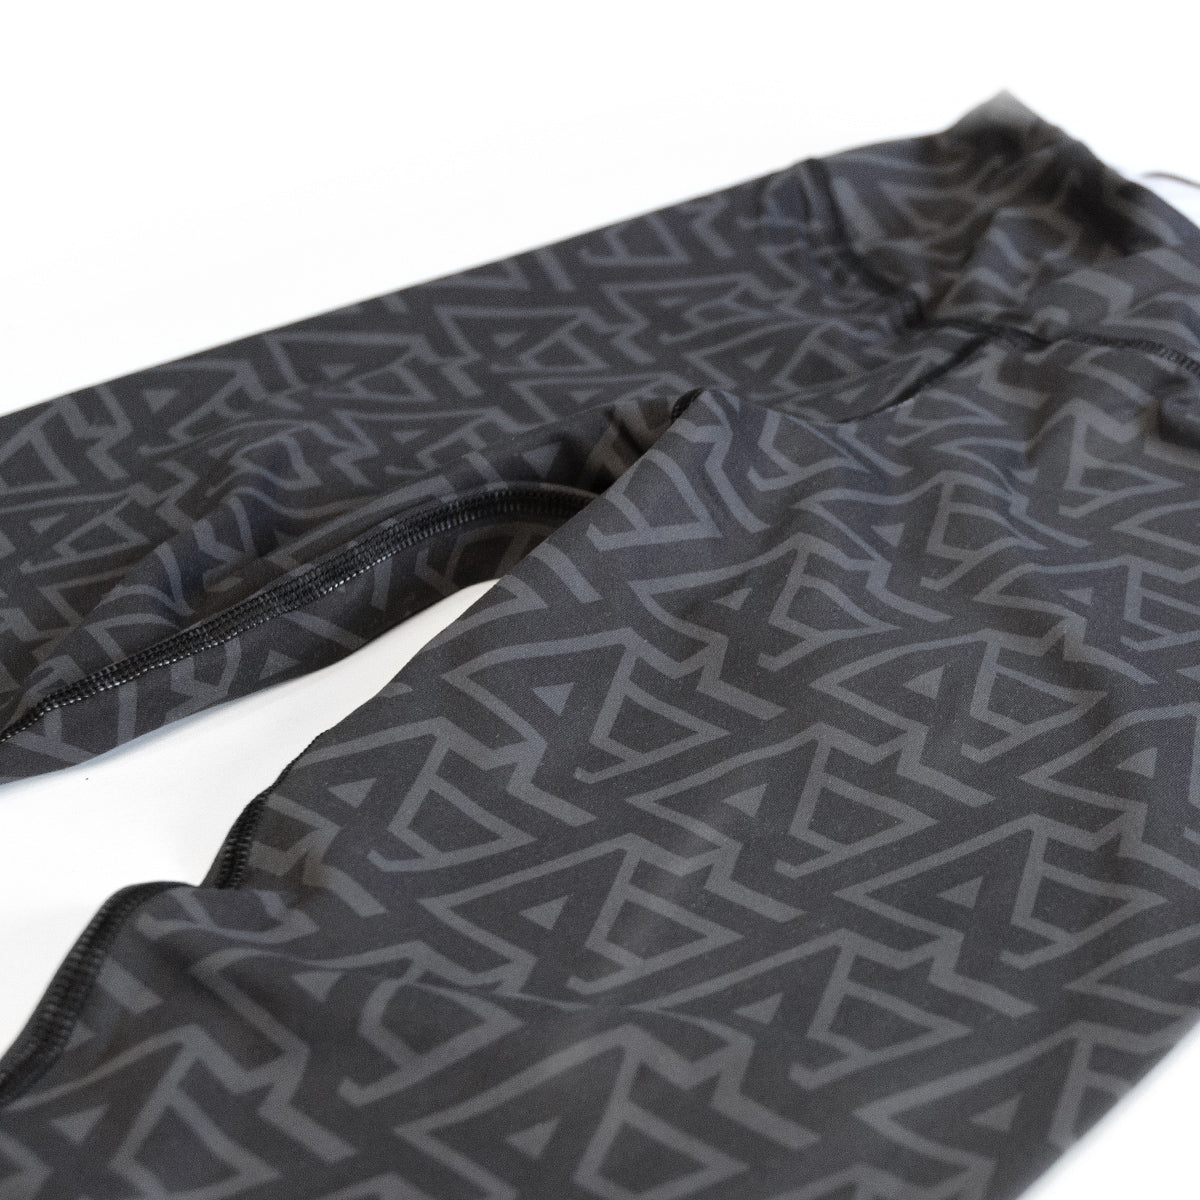 Lost Art Canada - black and grey leggings LA design close up view